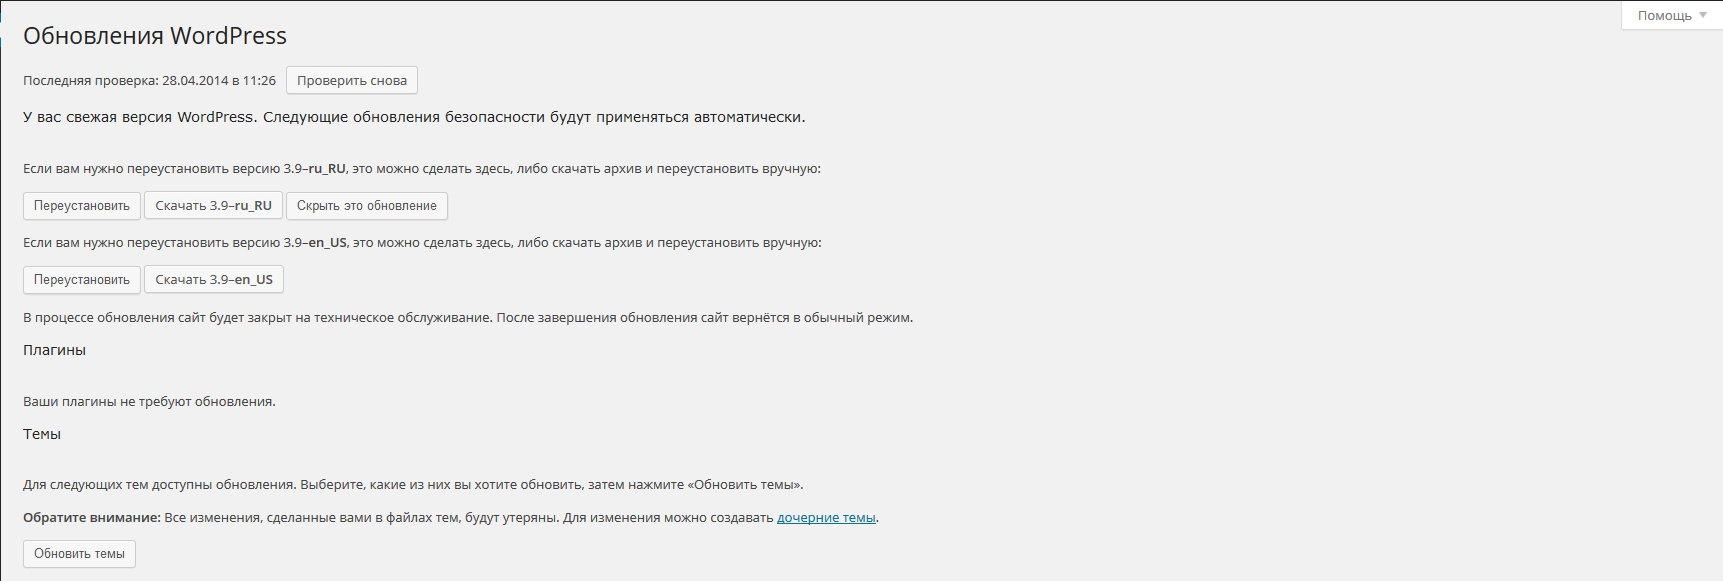 Админ панель WordPress